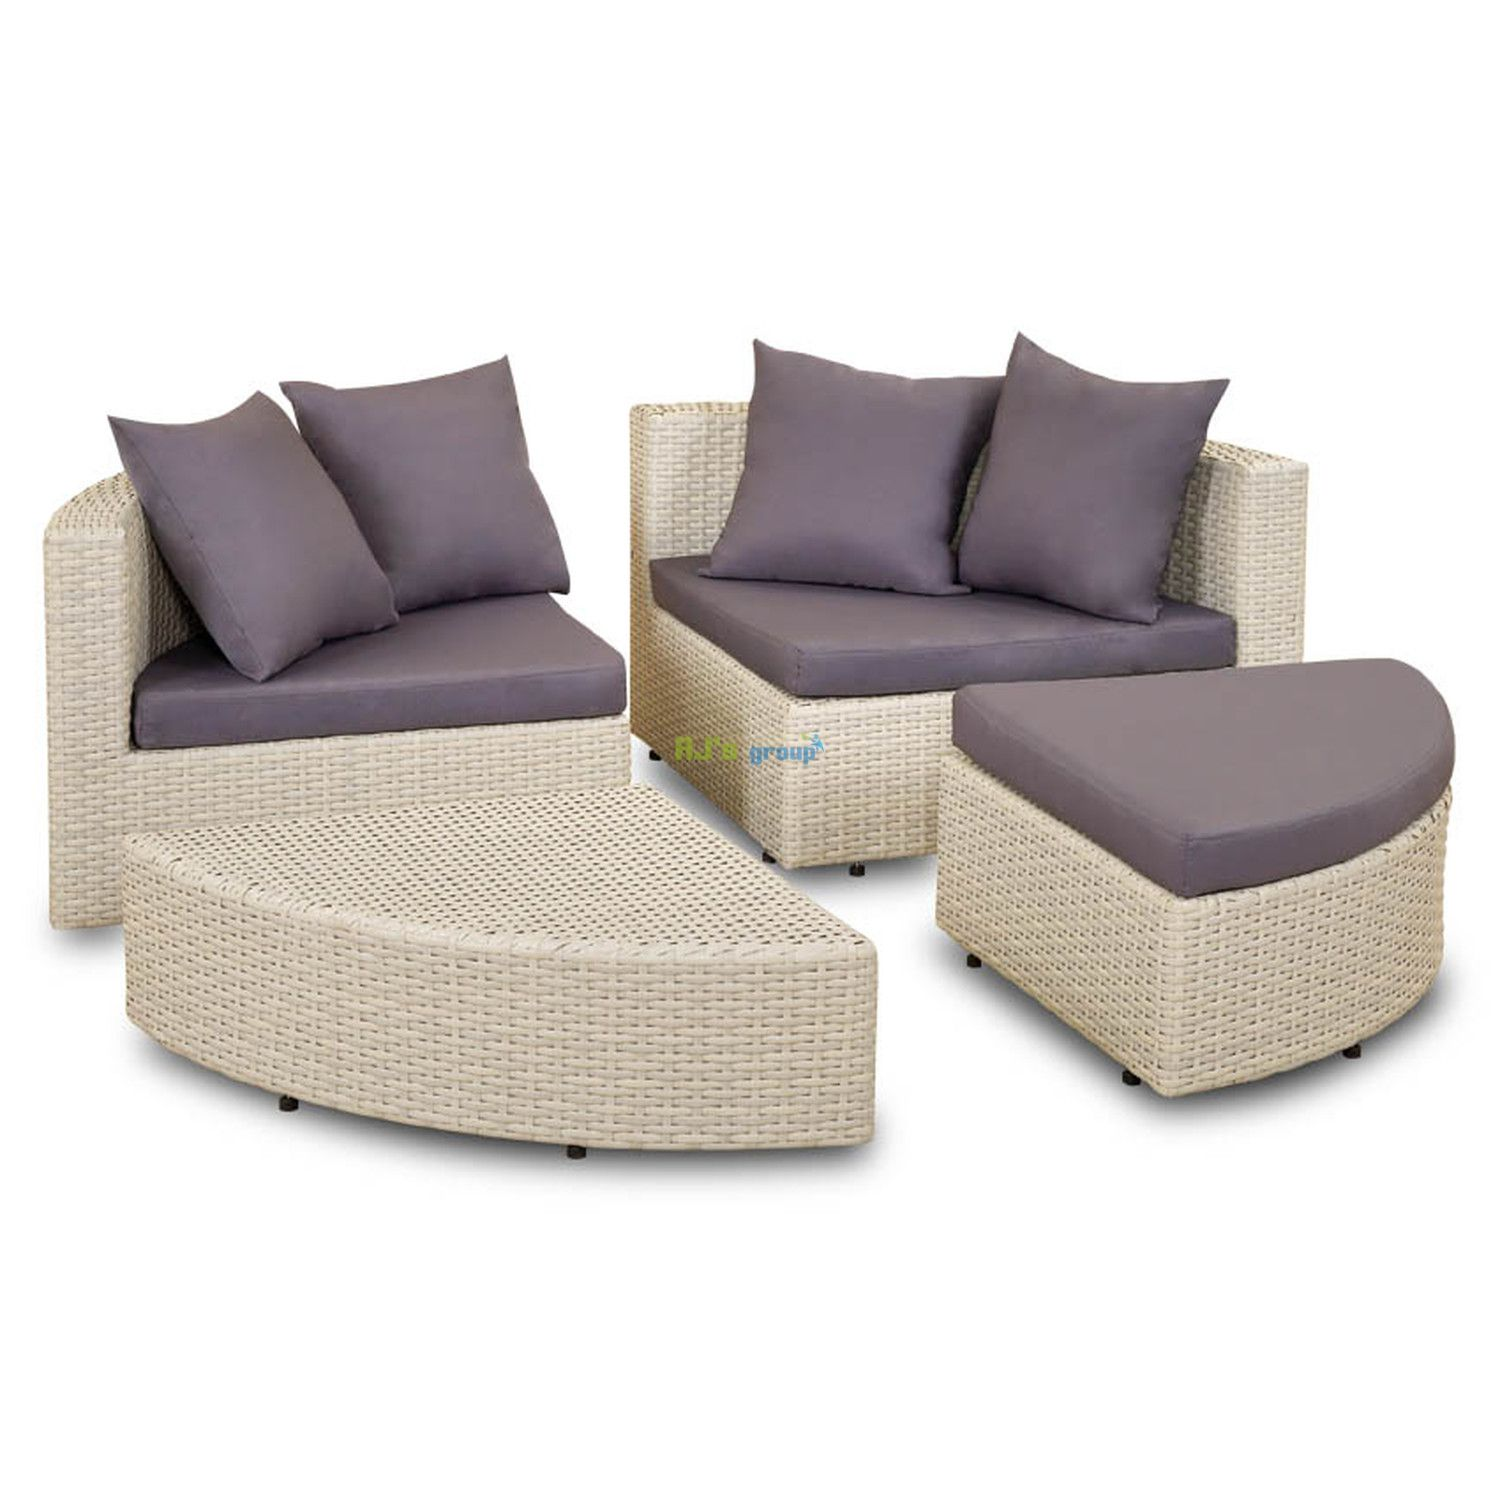 sonneninsel rattan muschel polyrattan lounge muschel. Black Bedroom Furniture Sets. Home Design Ideas